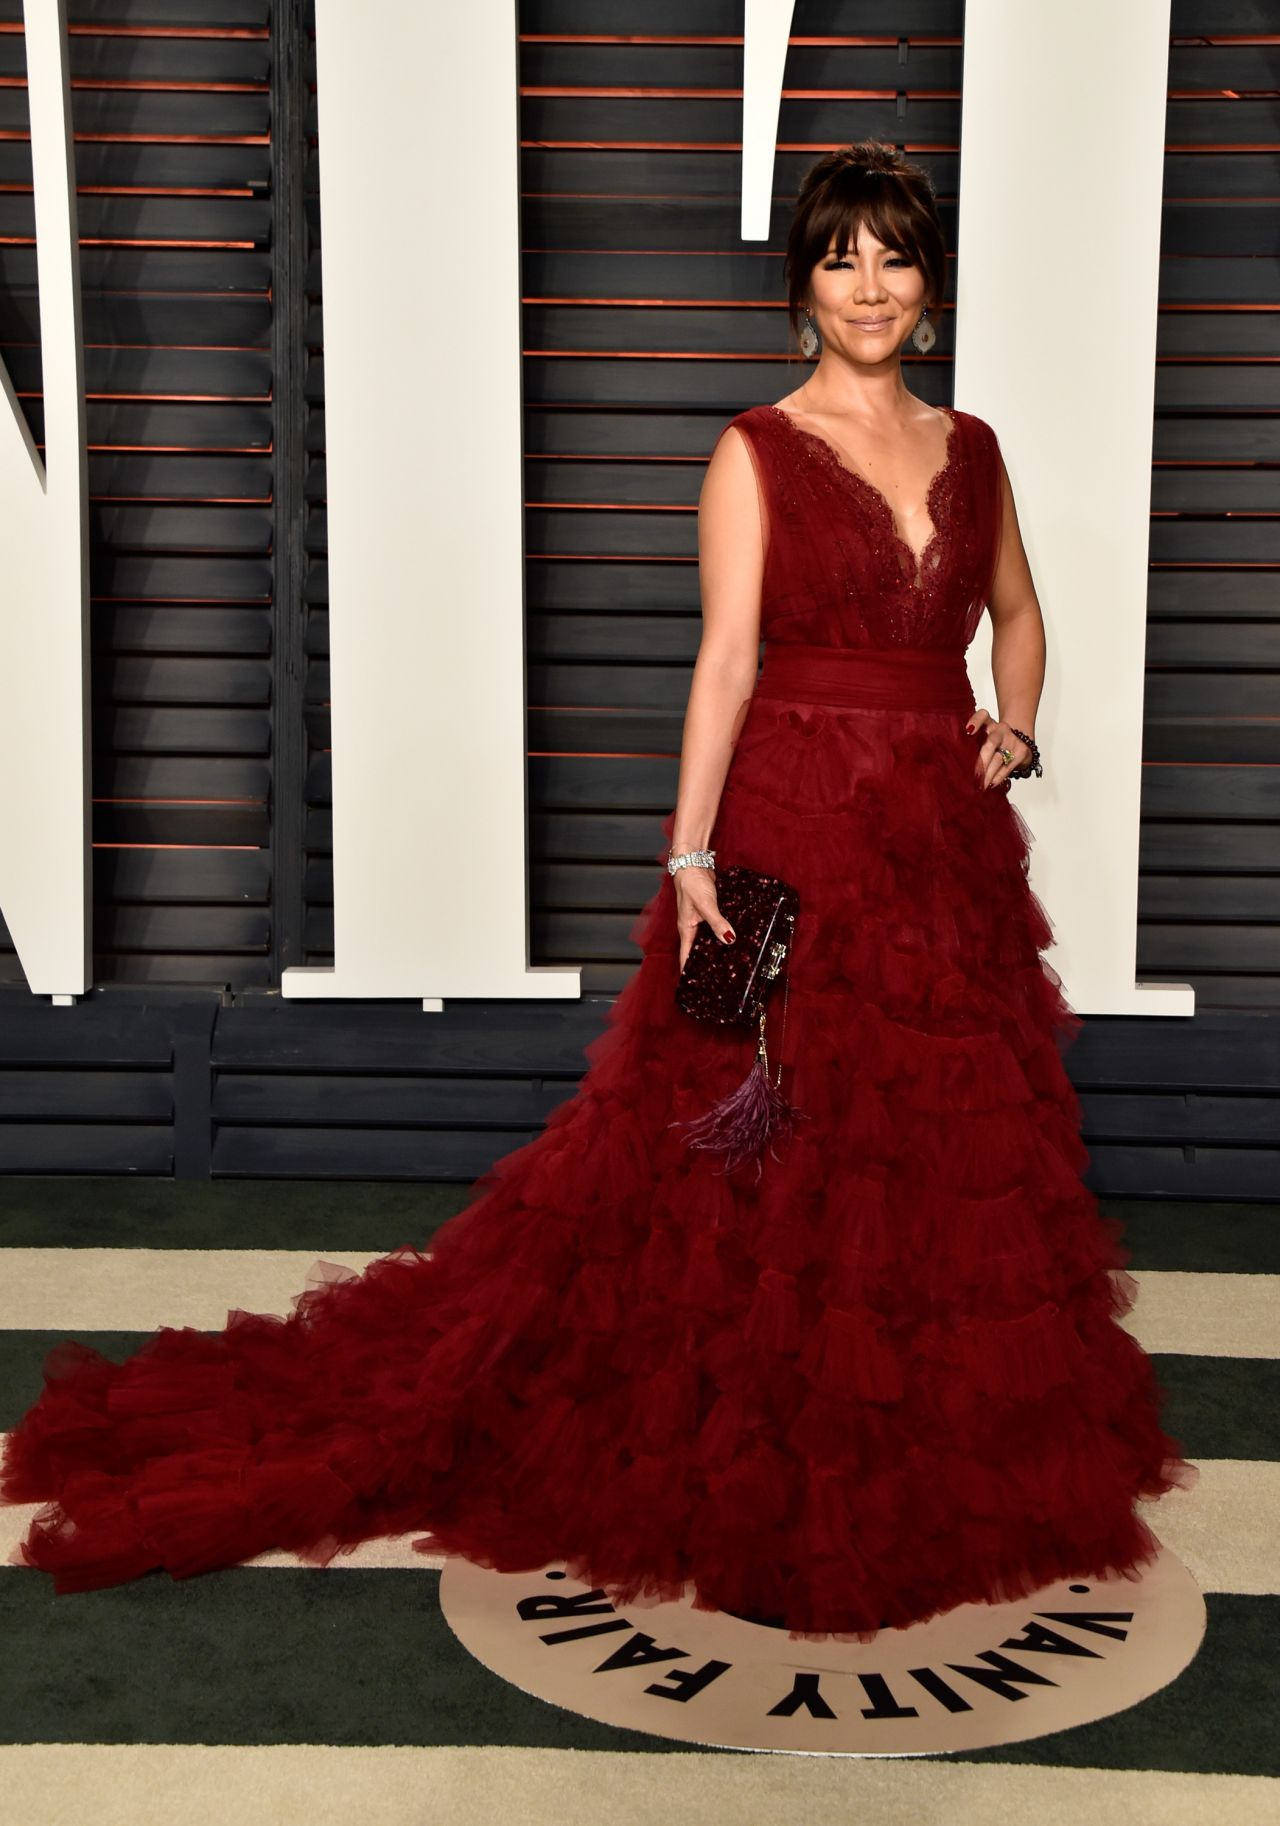 julie-chen-vanity-fair-oscar-2016-party-in-beverly-hills-ca-1